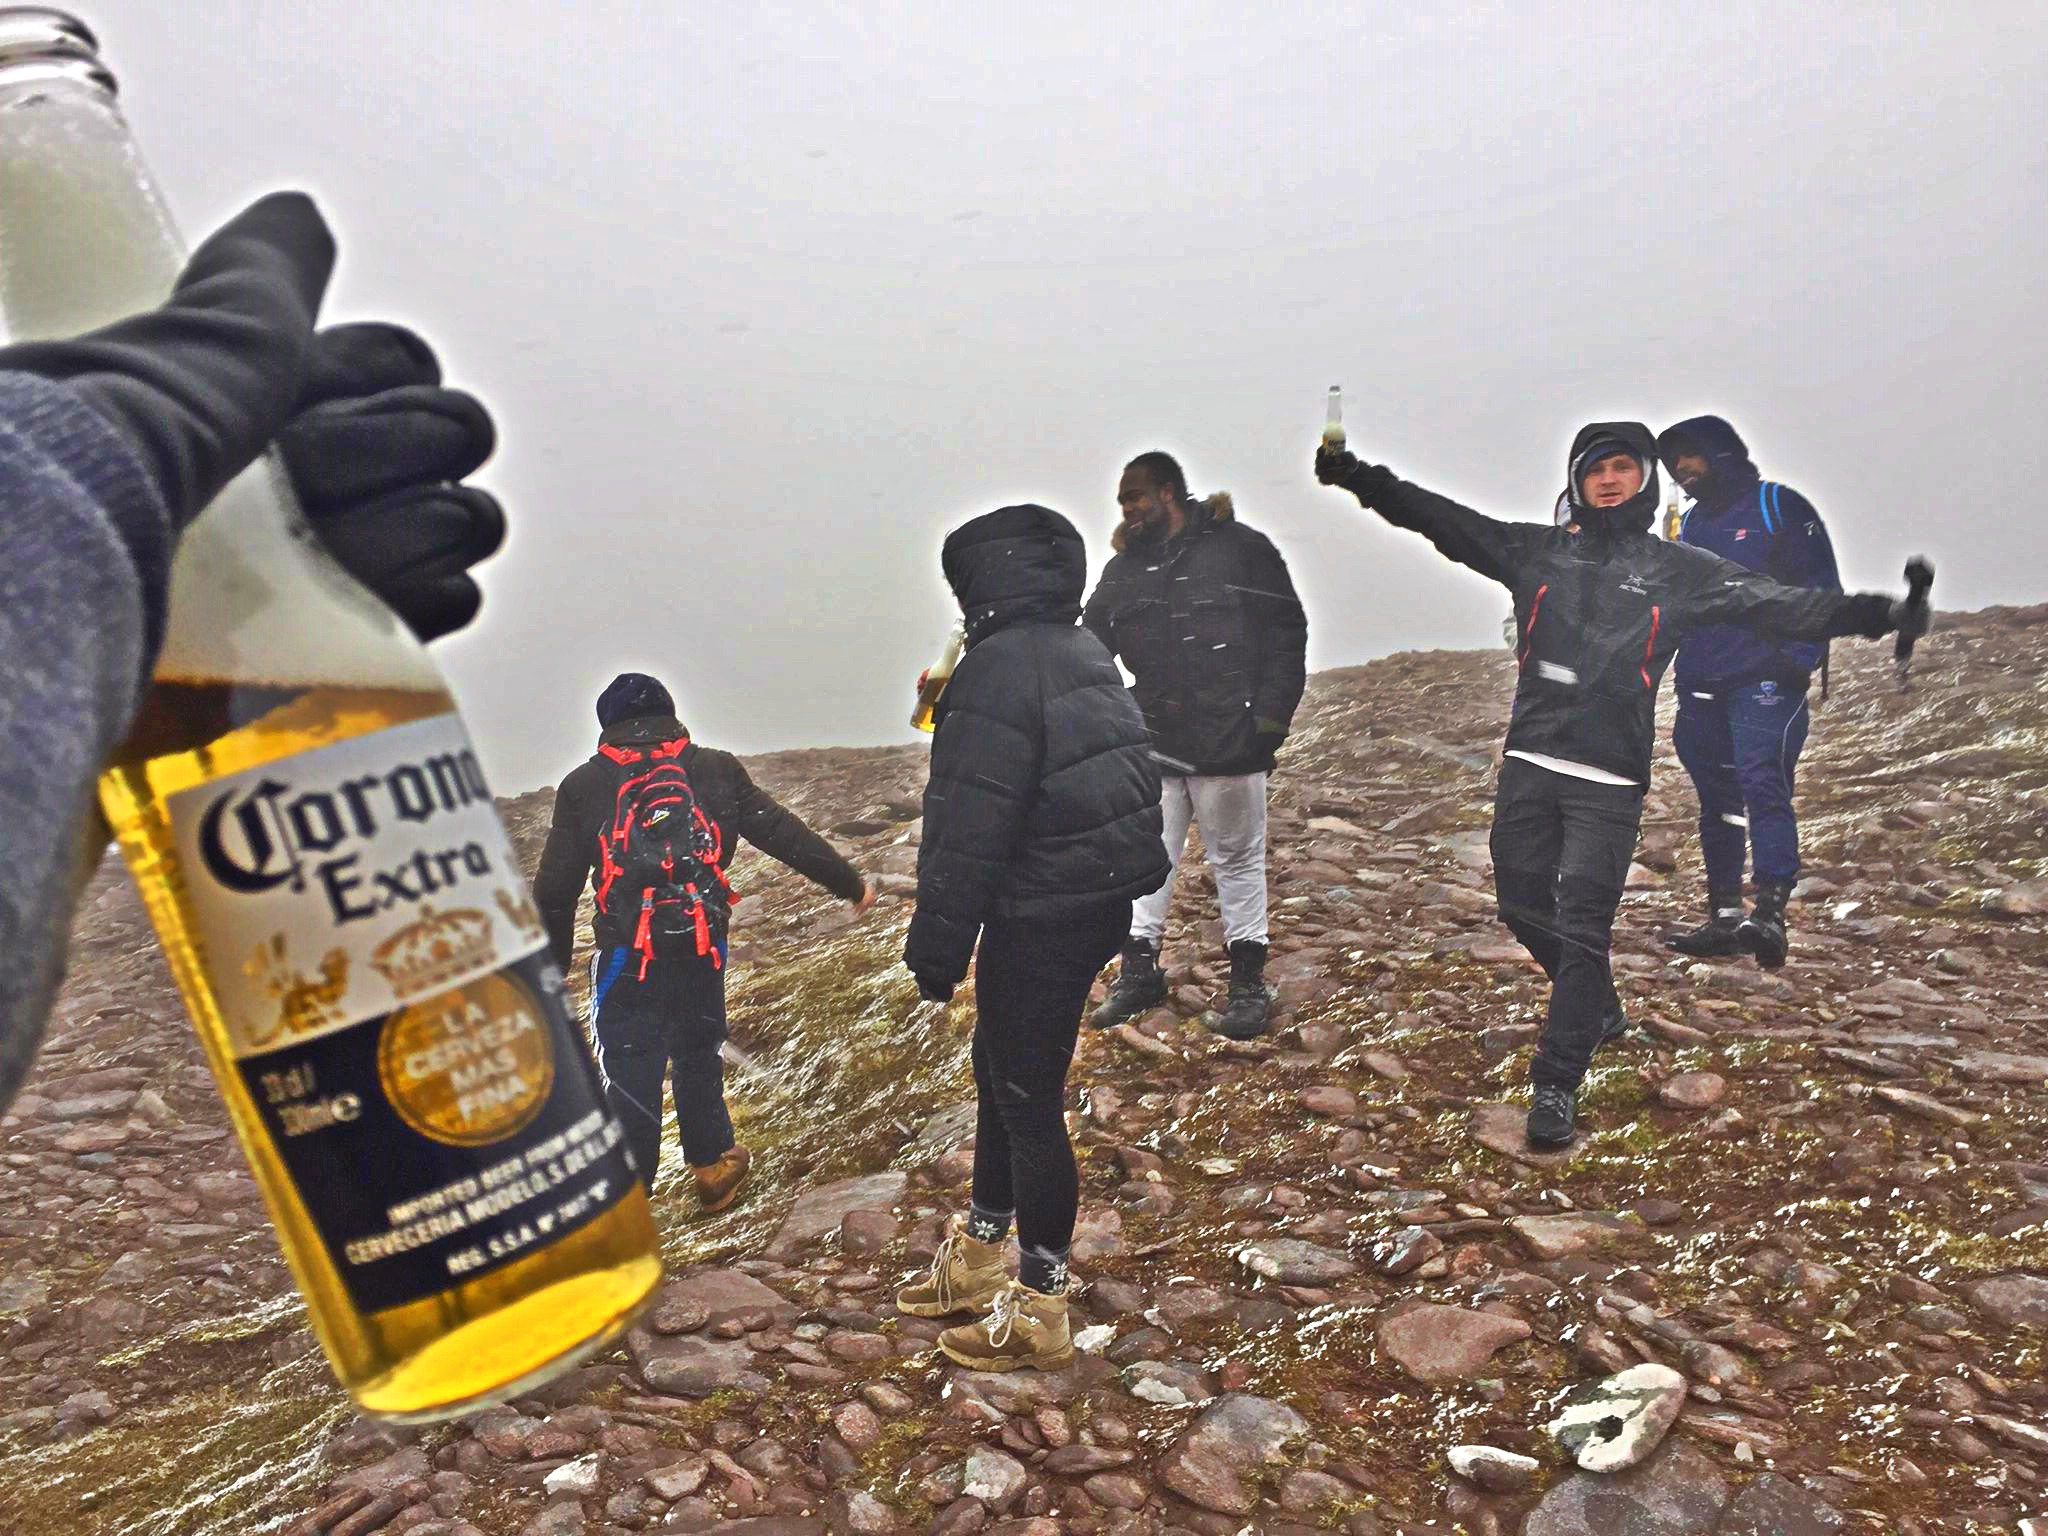 People drinking Corona extra beer on top of the mountain in snow